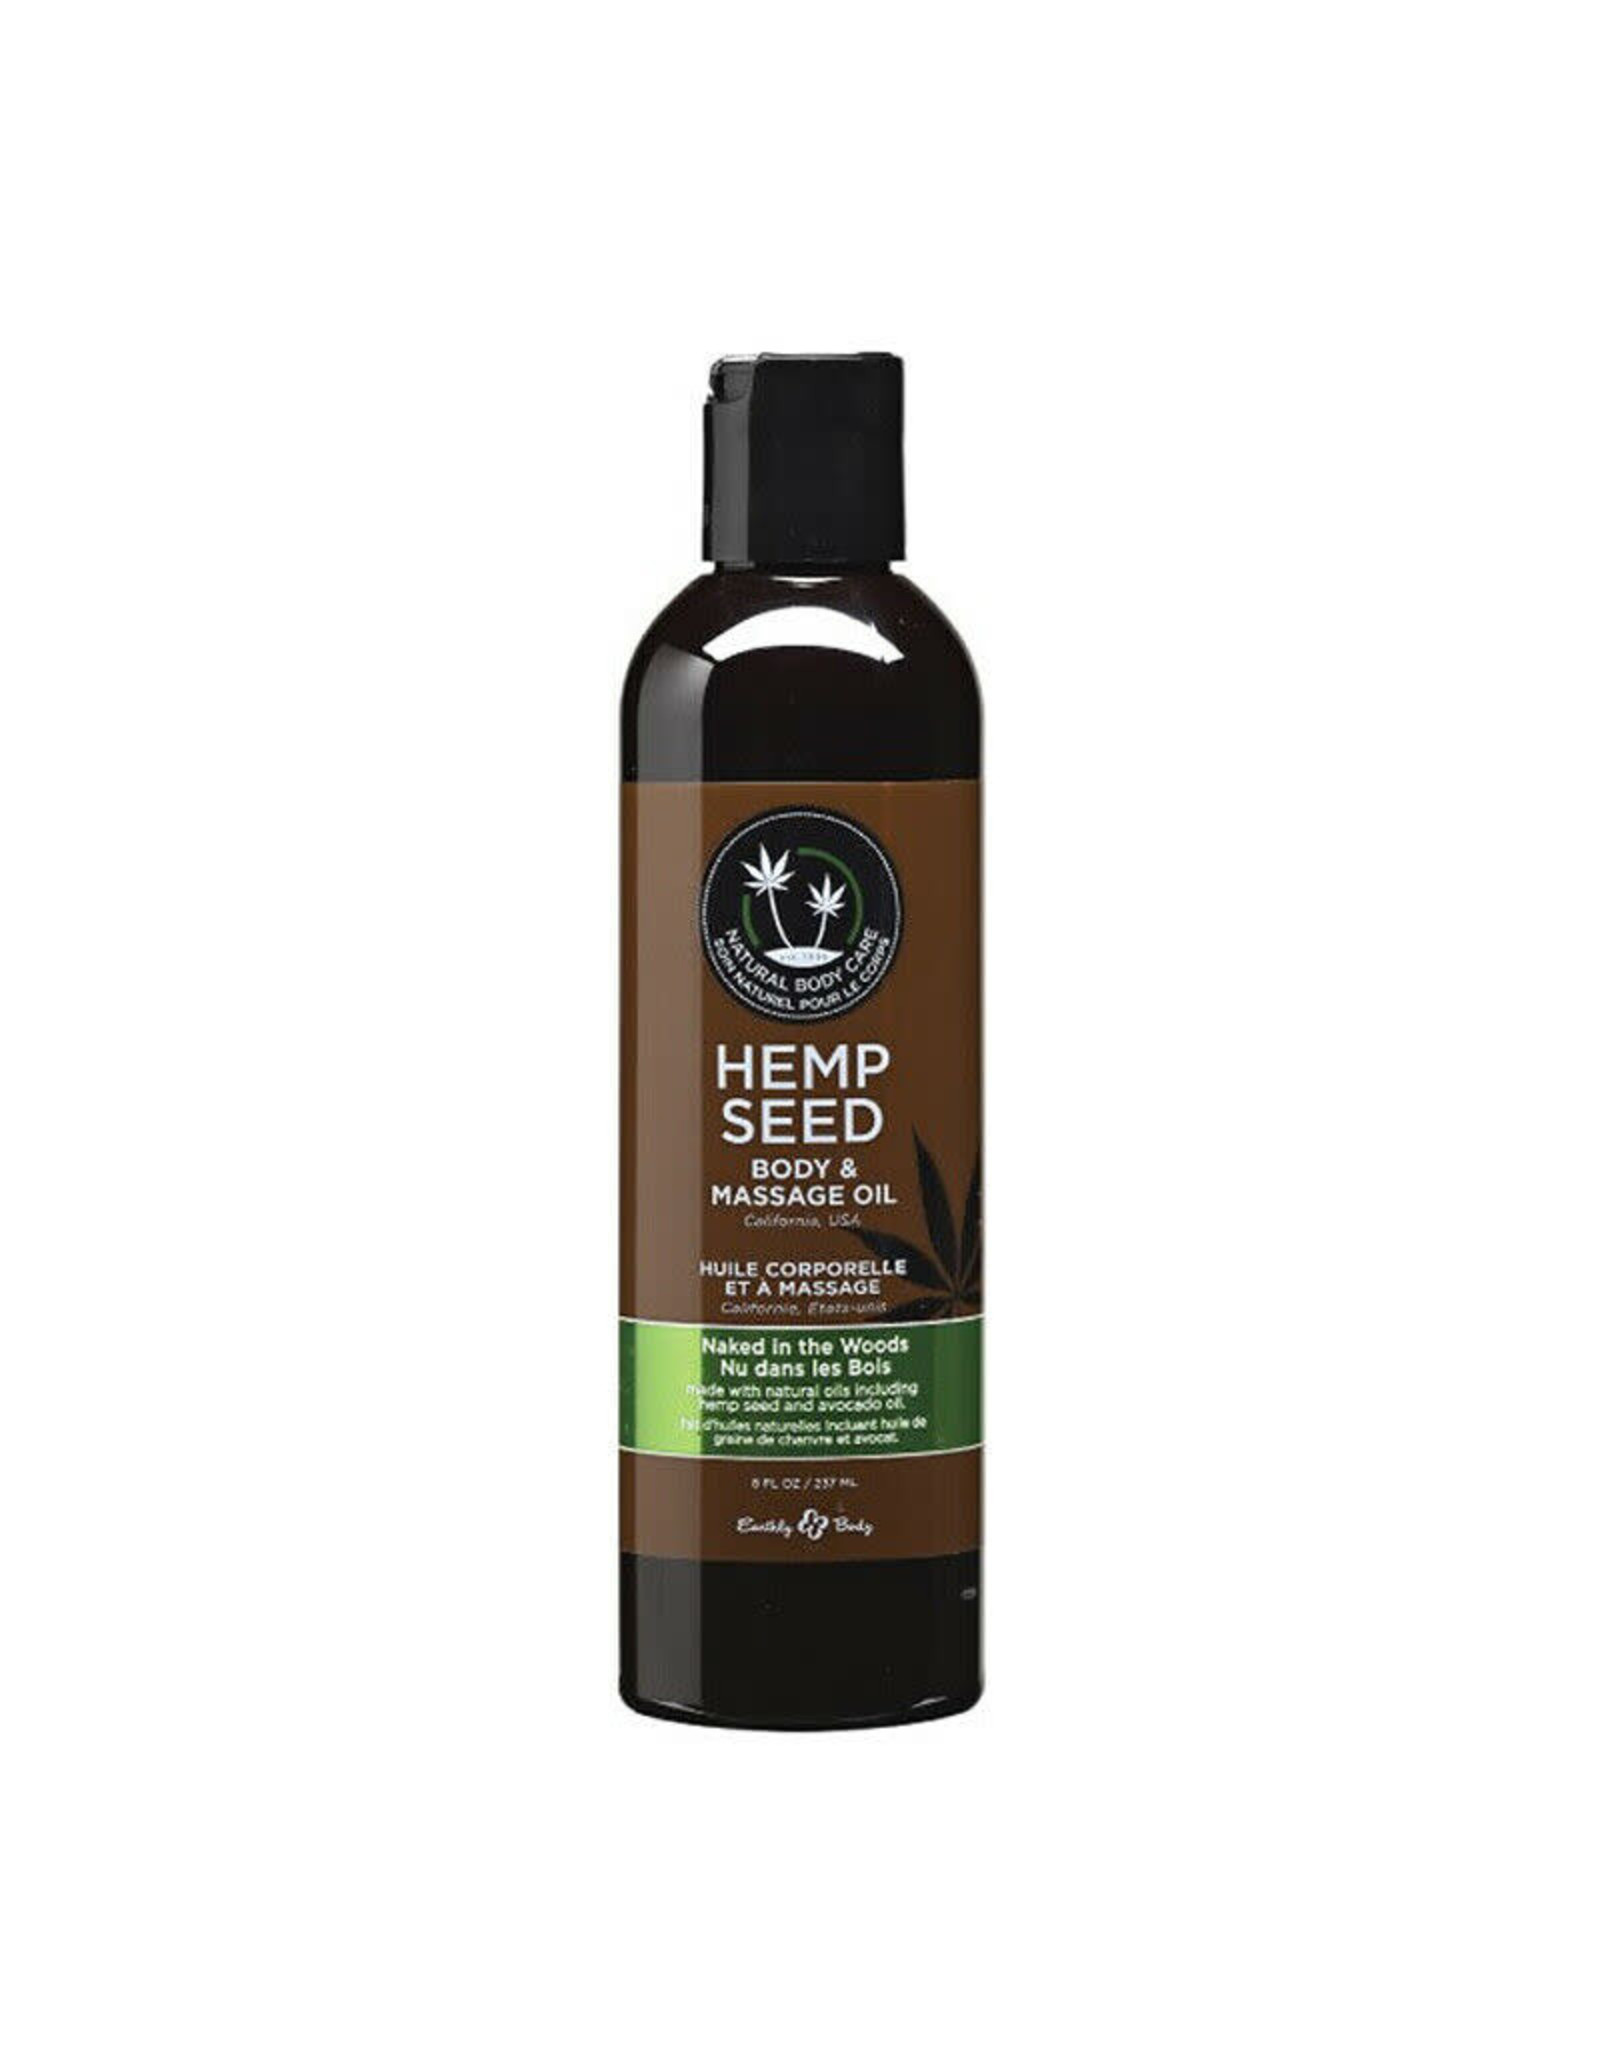 EARTHLY BODIES - HEMP SEED MASSAGE OIL - NAKED IN THE WOODS 8oz